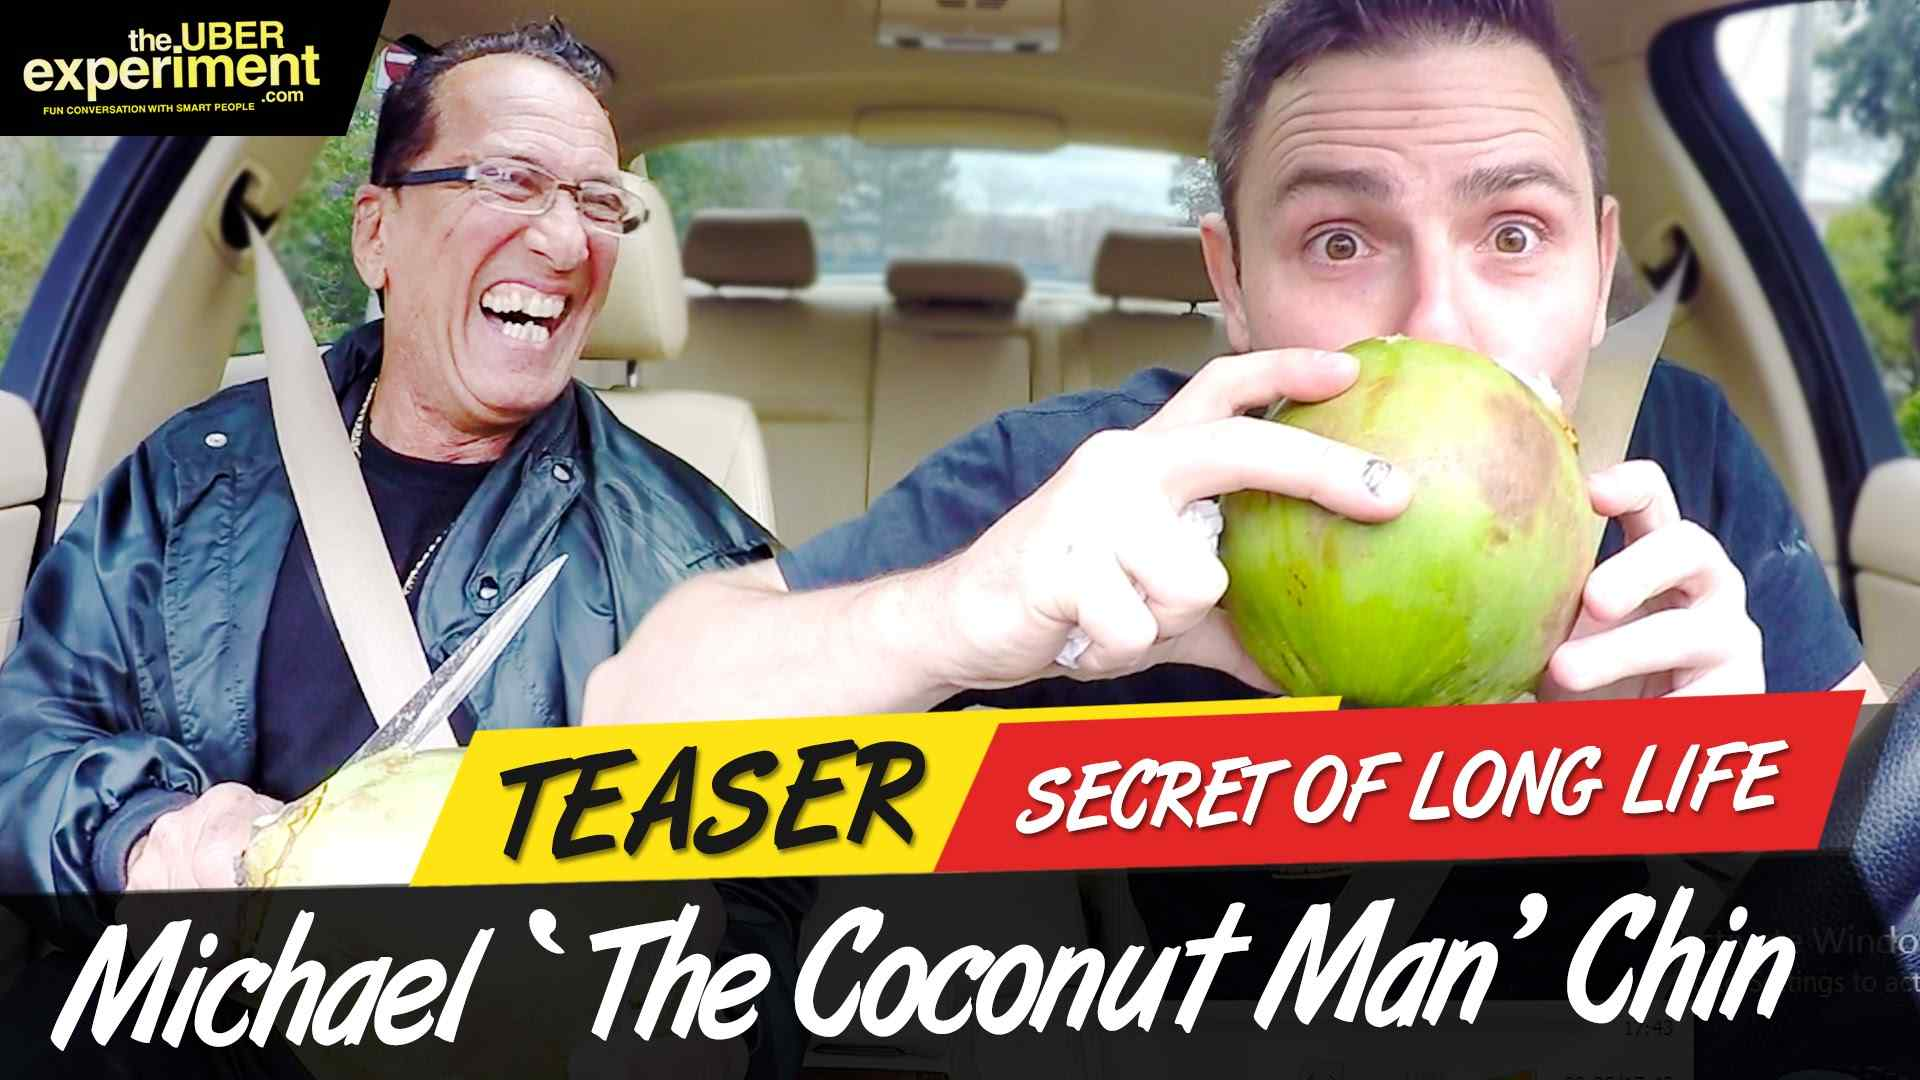 SECRET TO LONG LIFE - Musician, Actor & Big Party Coconut Man MICHAEL CHIN Rides The Uber Experiment